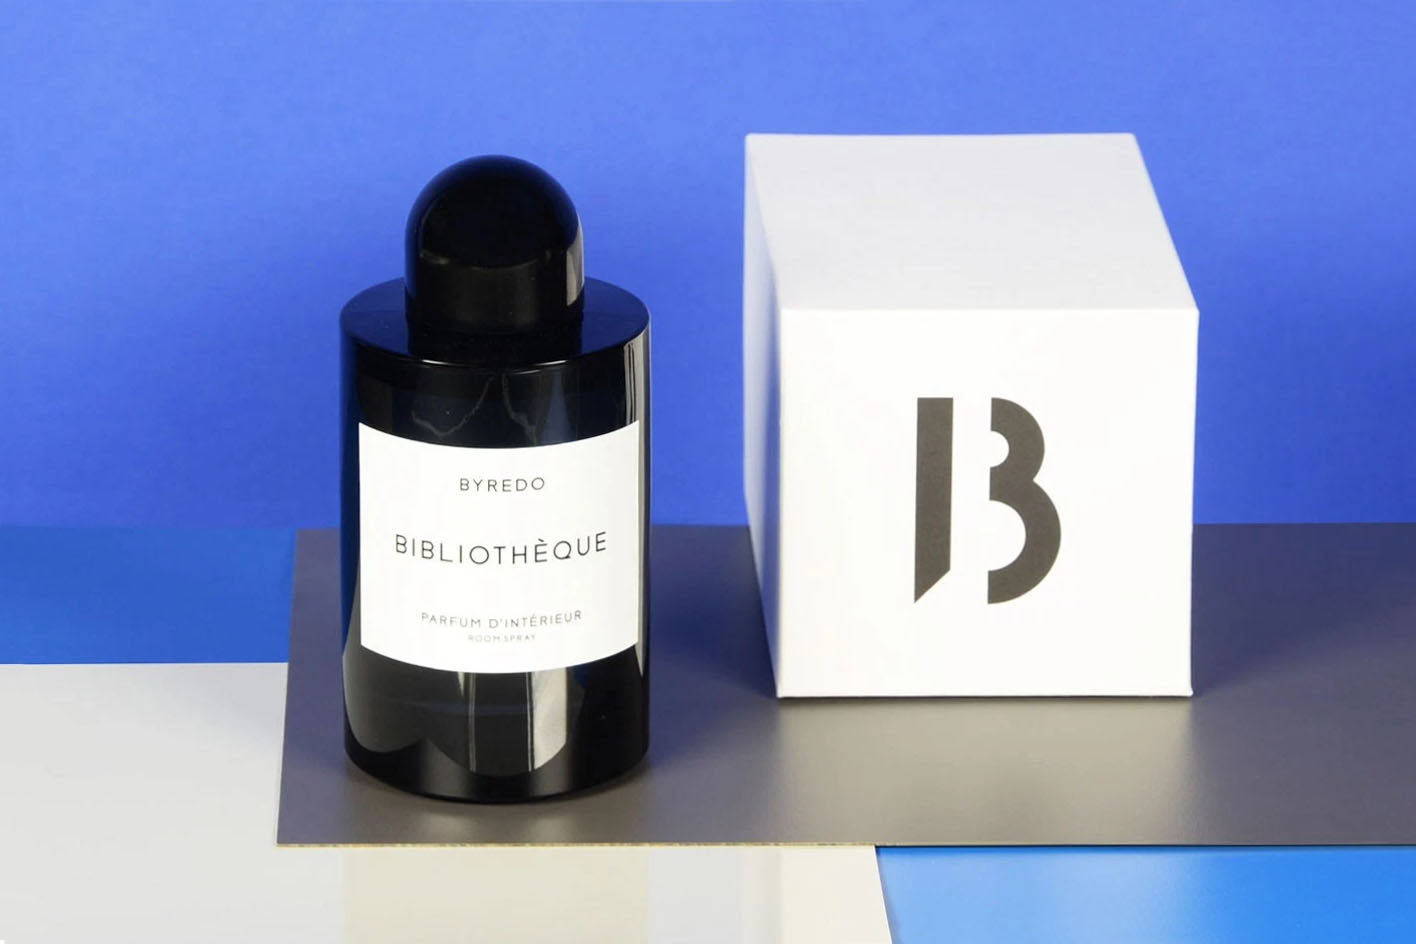 Byredo Bibliothèque Room Spray Combines Peach and Plum With Leather Scents